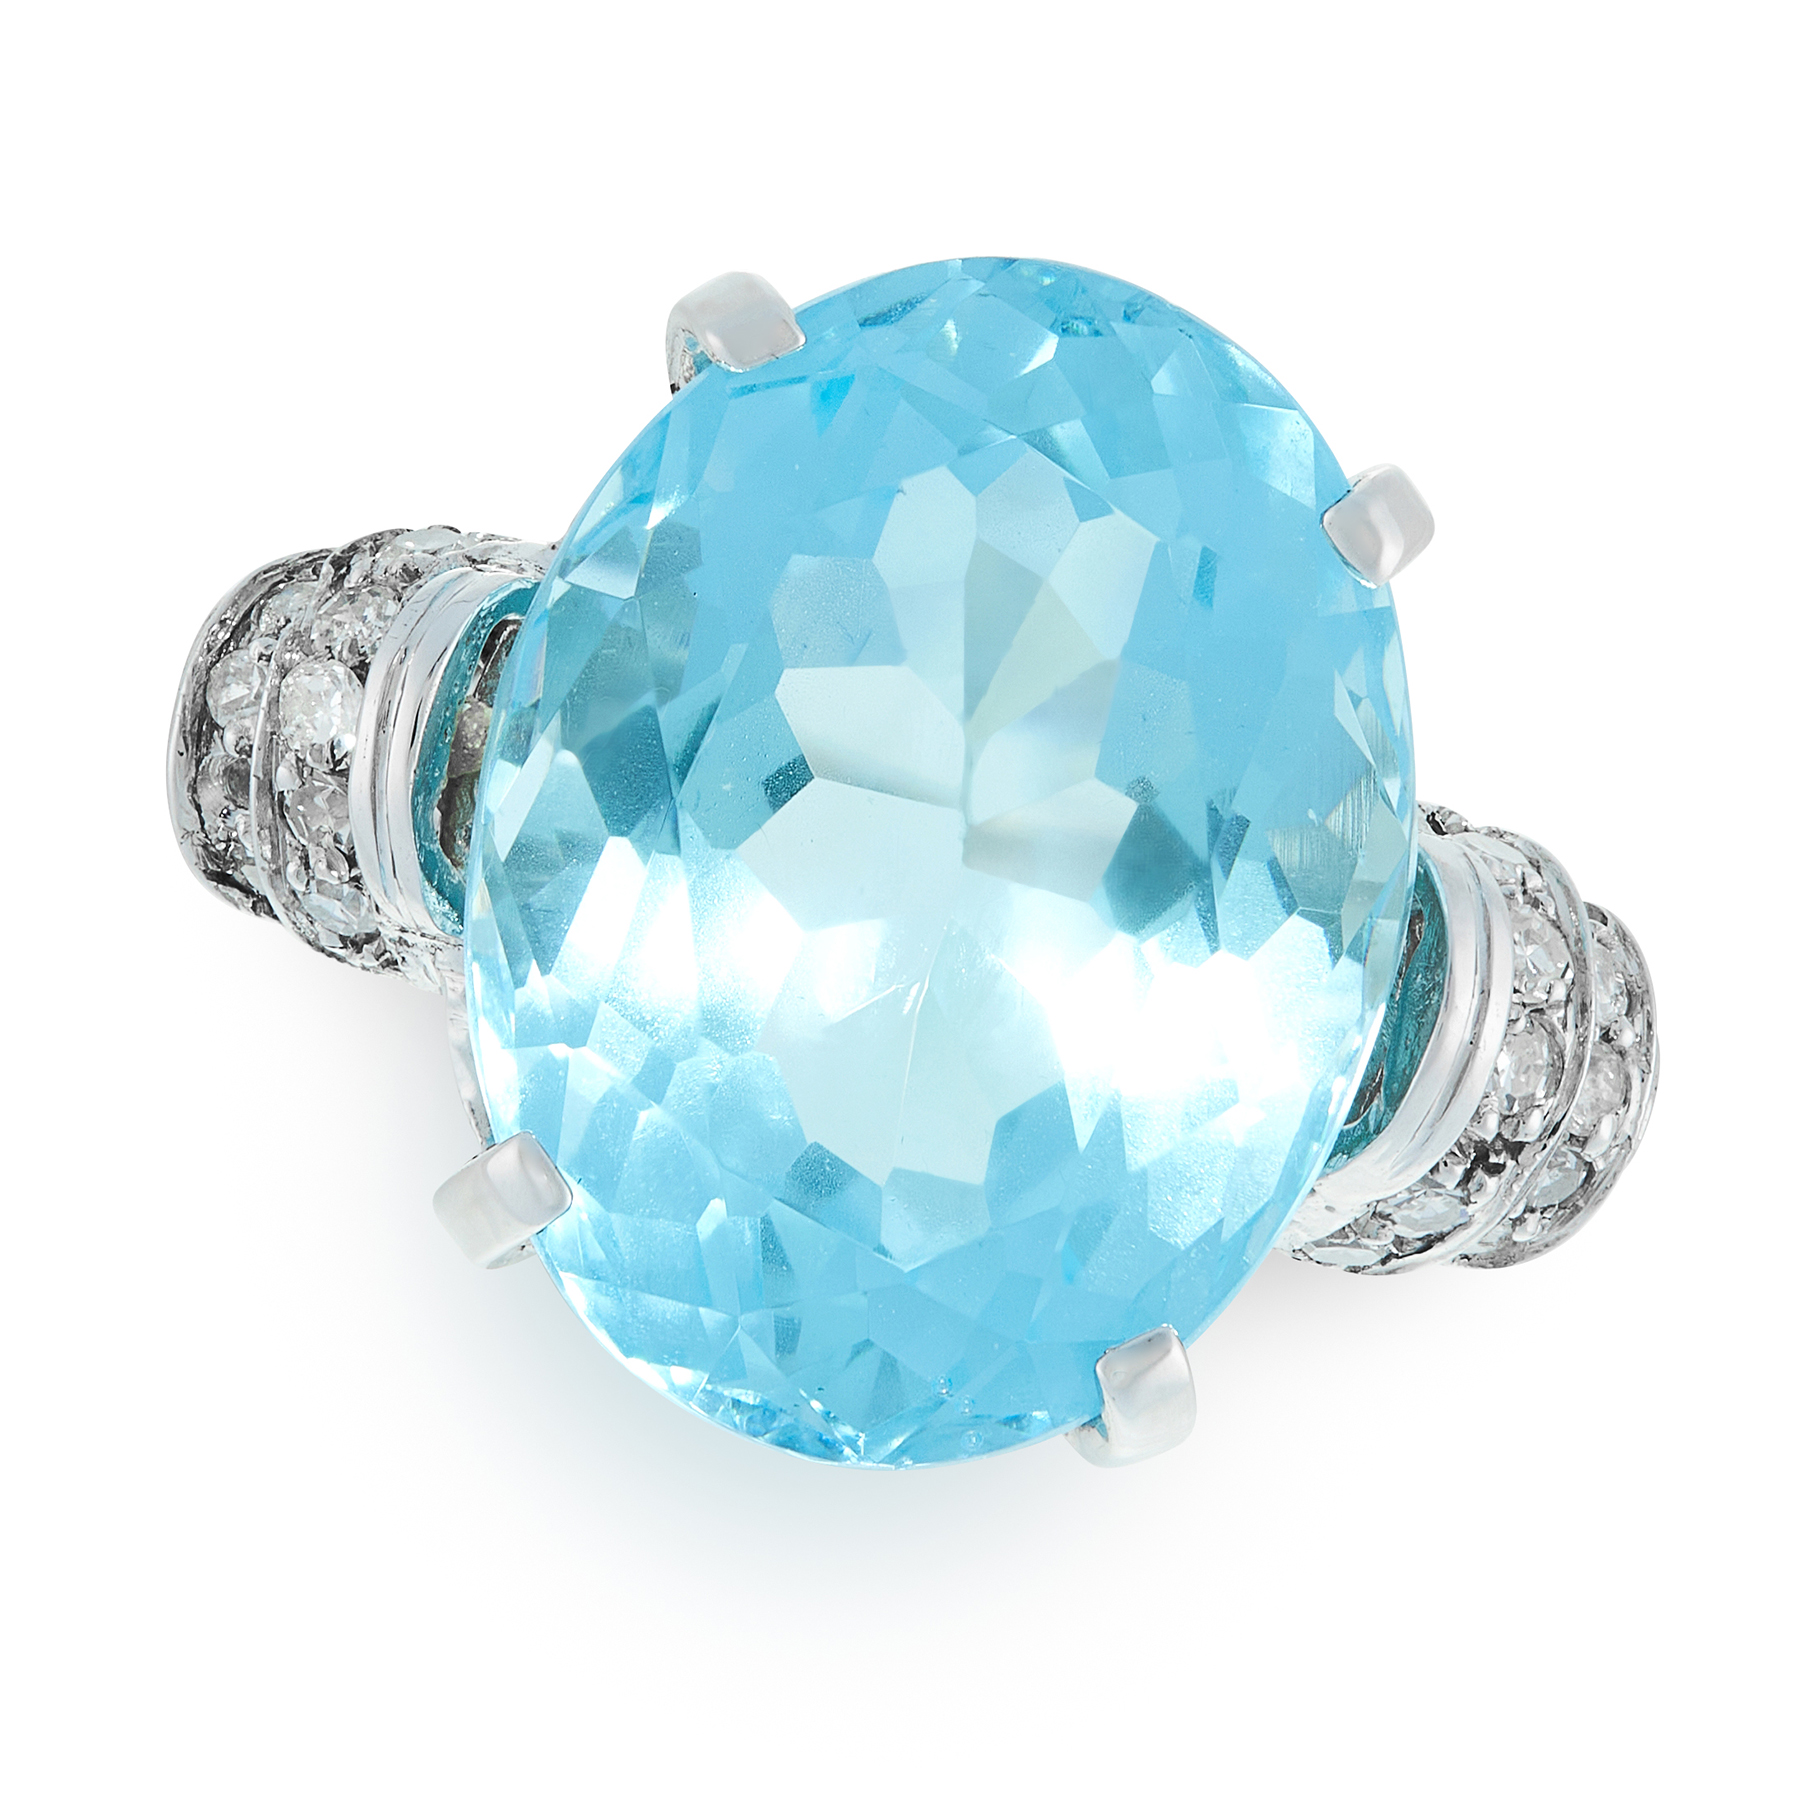 A BLUE TOPAZ AND DIAMOND RING in white gold, set with an oval cut blue topaz of 15.10 carats, the